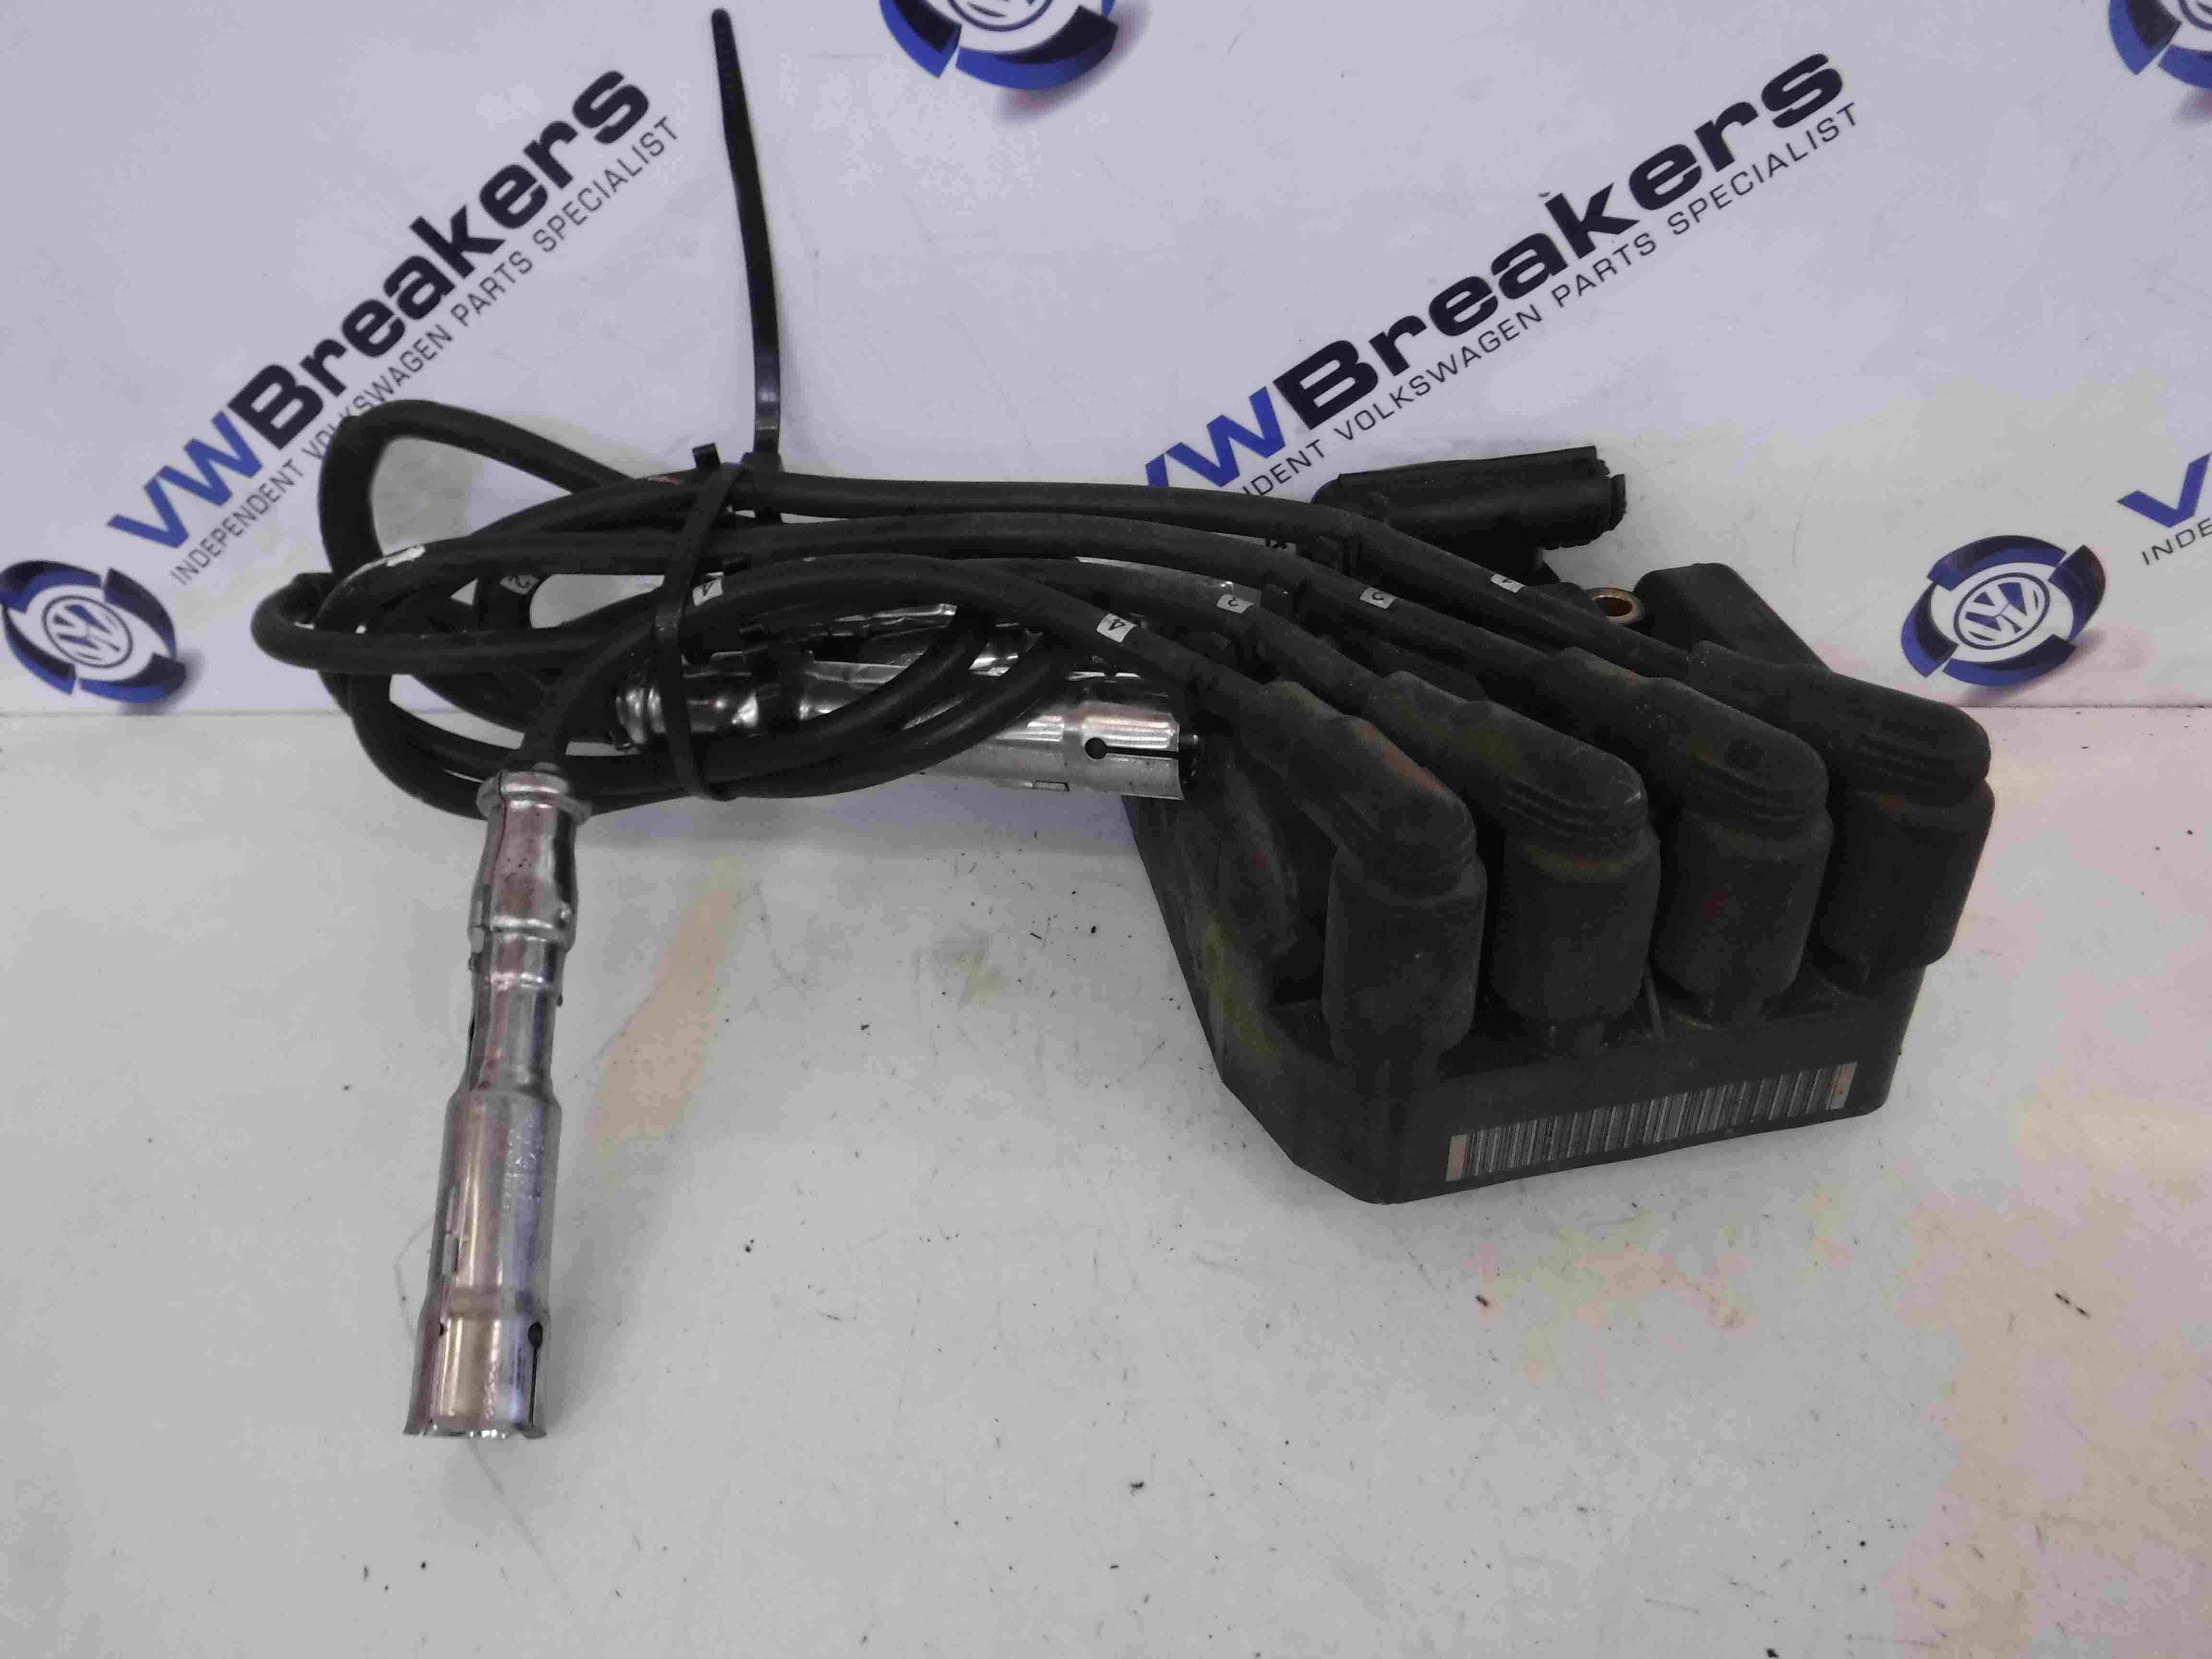 Volkswagen Beetle 2000-2006 2.0 8v Ignition Coil Pack  Leads AZJ 06a905097